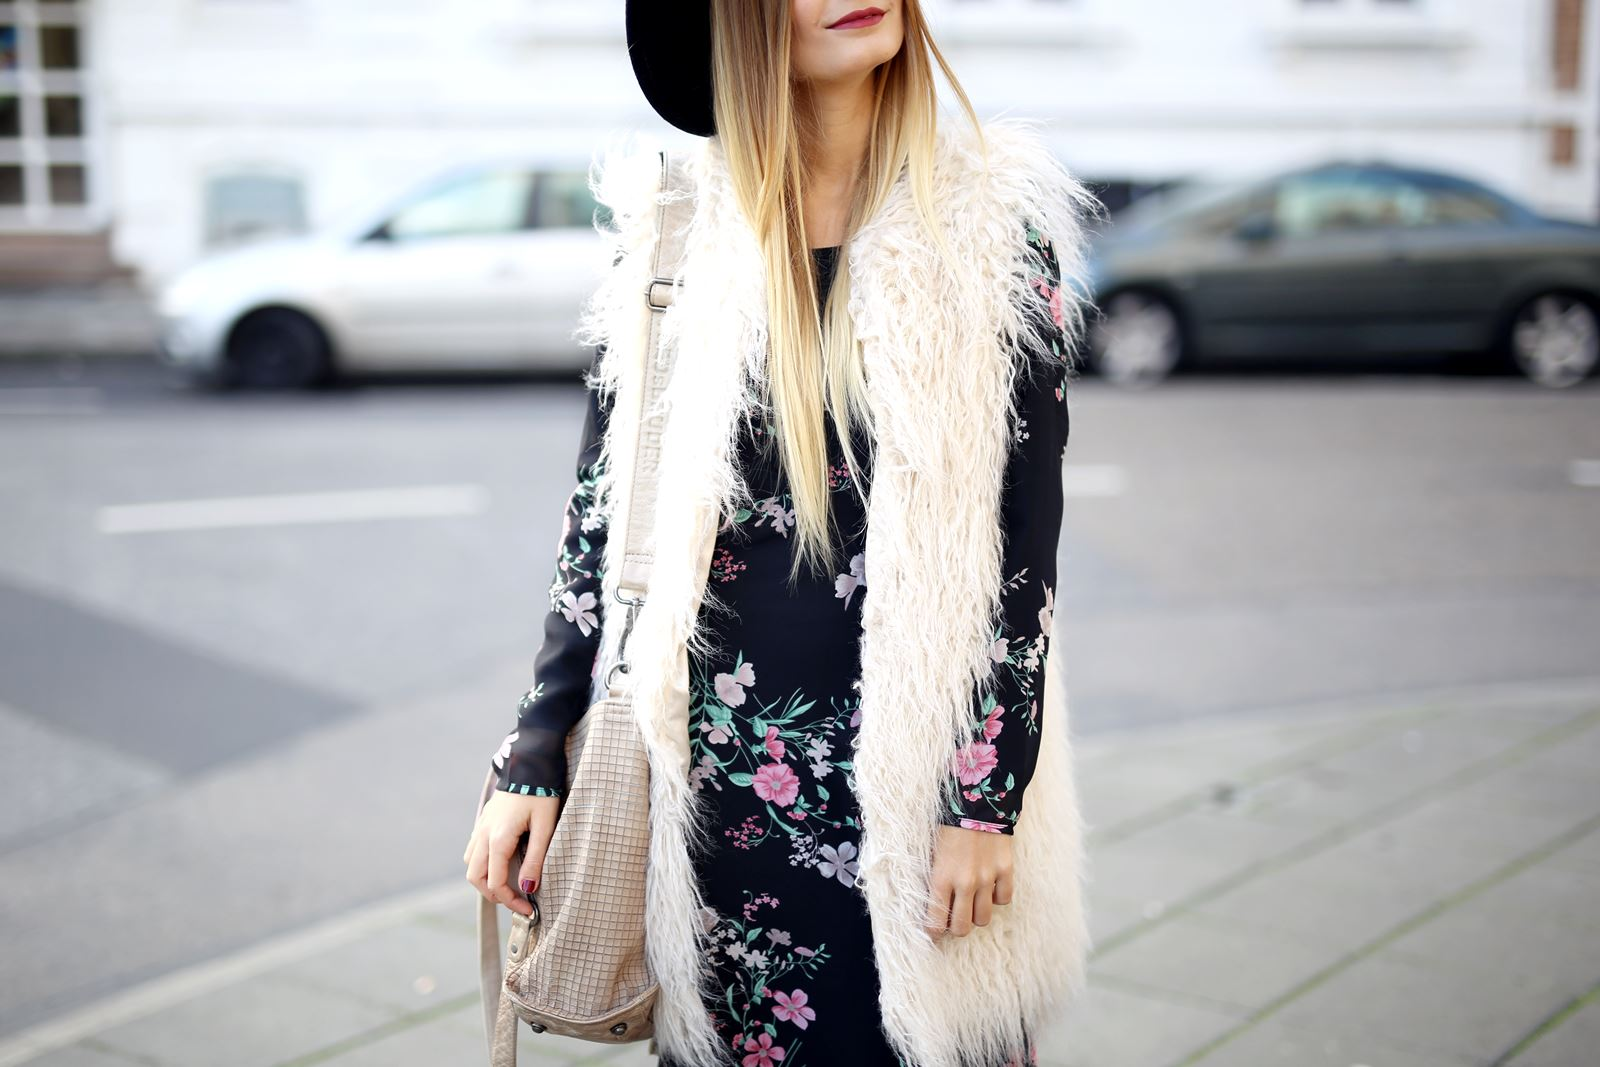 modeblog-fashion-blog-outfit-herbst-fake-fur-maxi-kleid-13